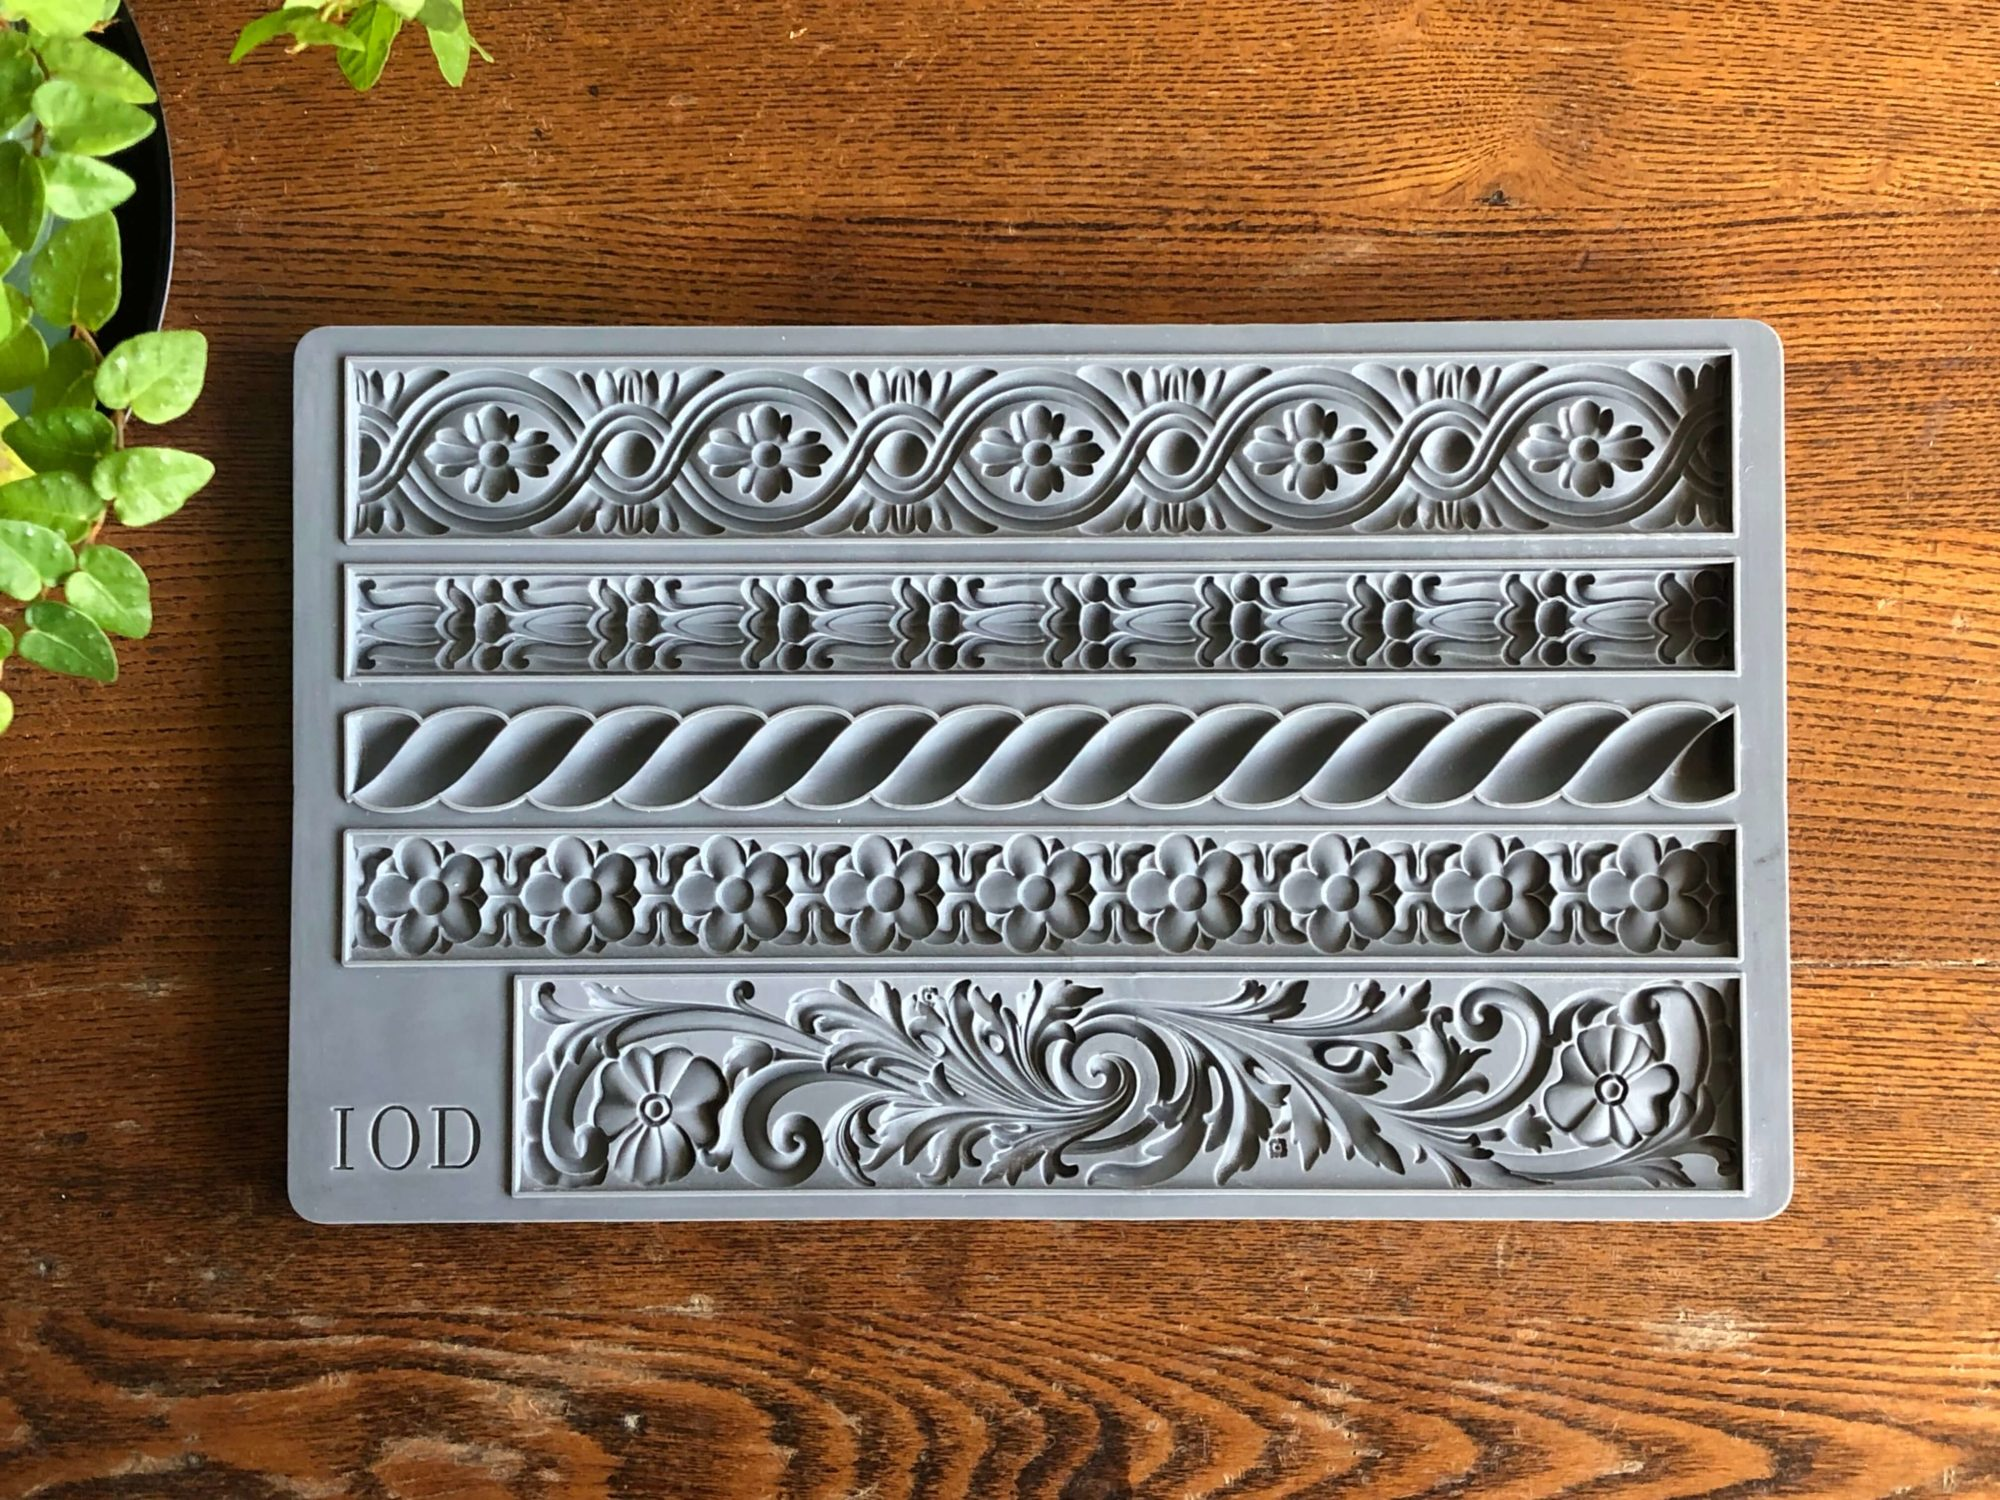 Trimmings 2 mould by Iron Orchid Designs